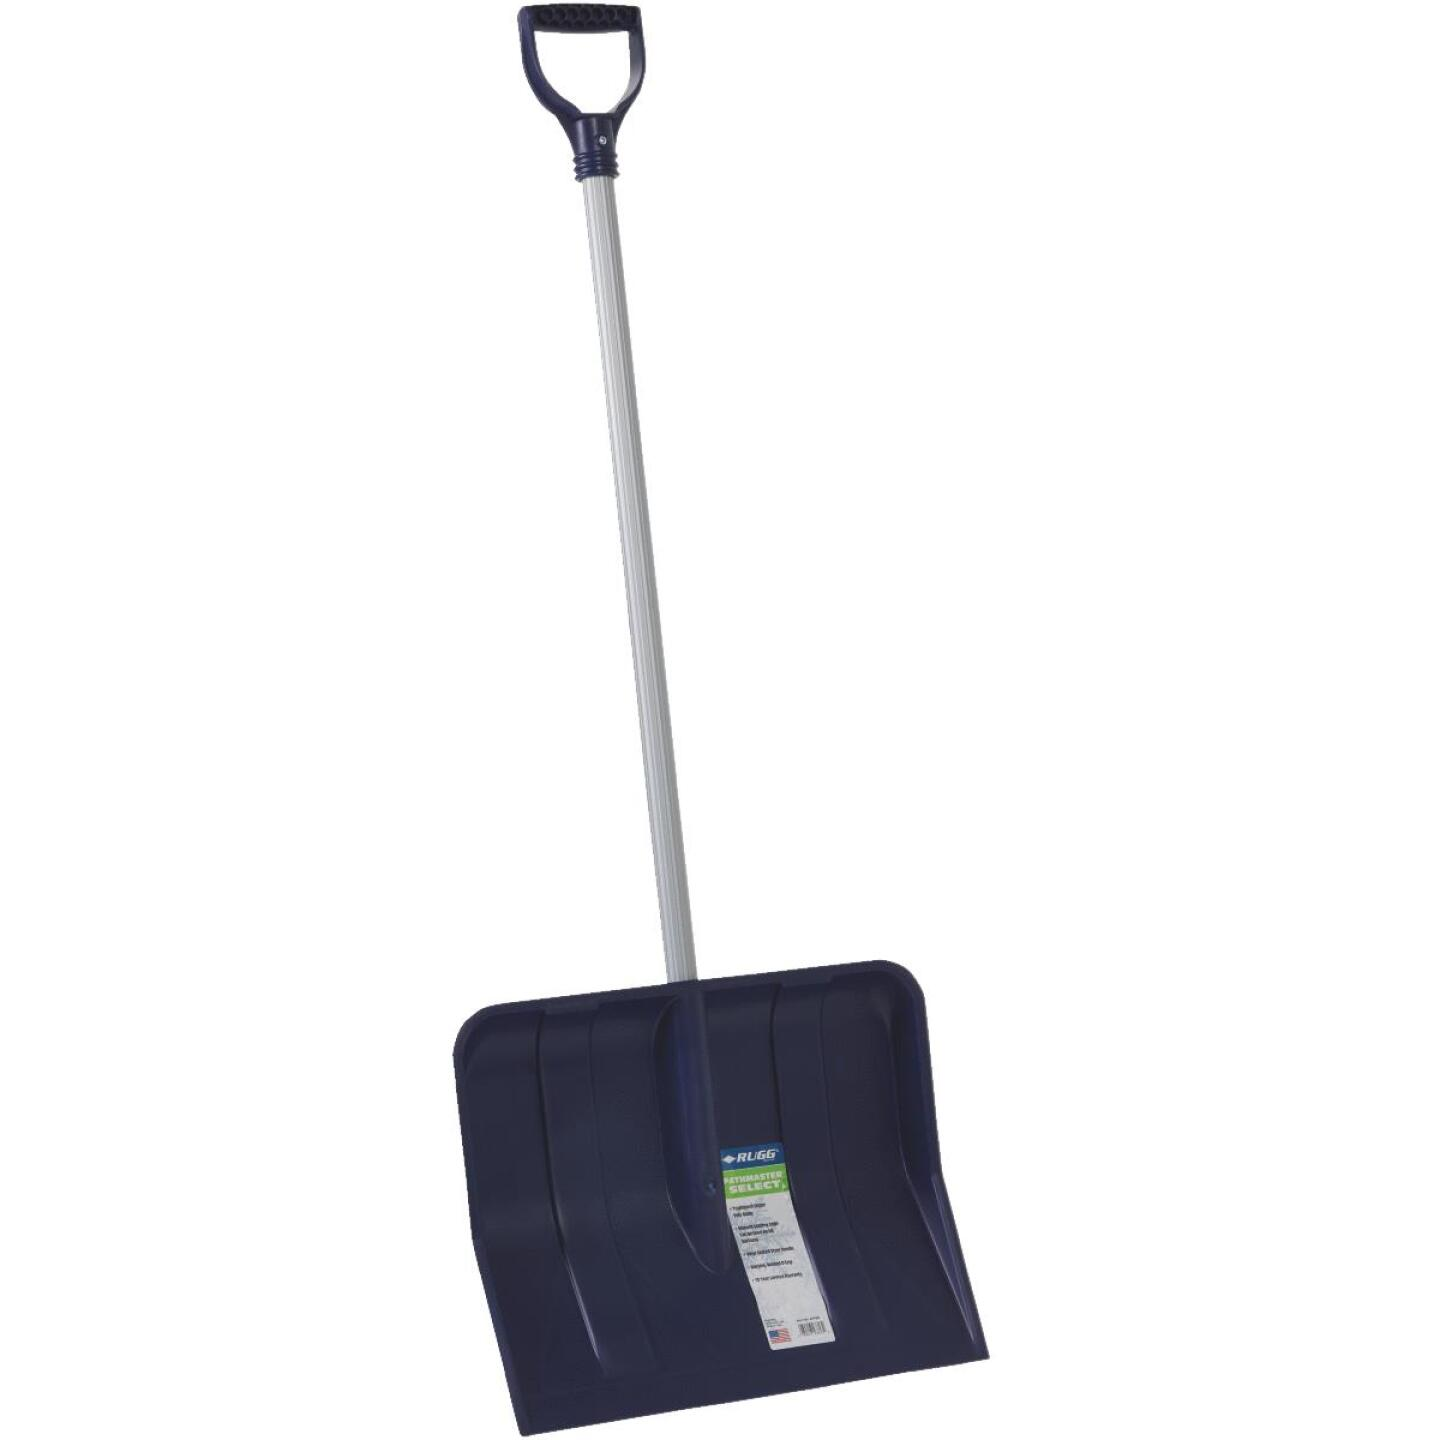 Rugg 18 In. Poly Snow Shovel with 35 In. Steel Handle Image 1